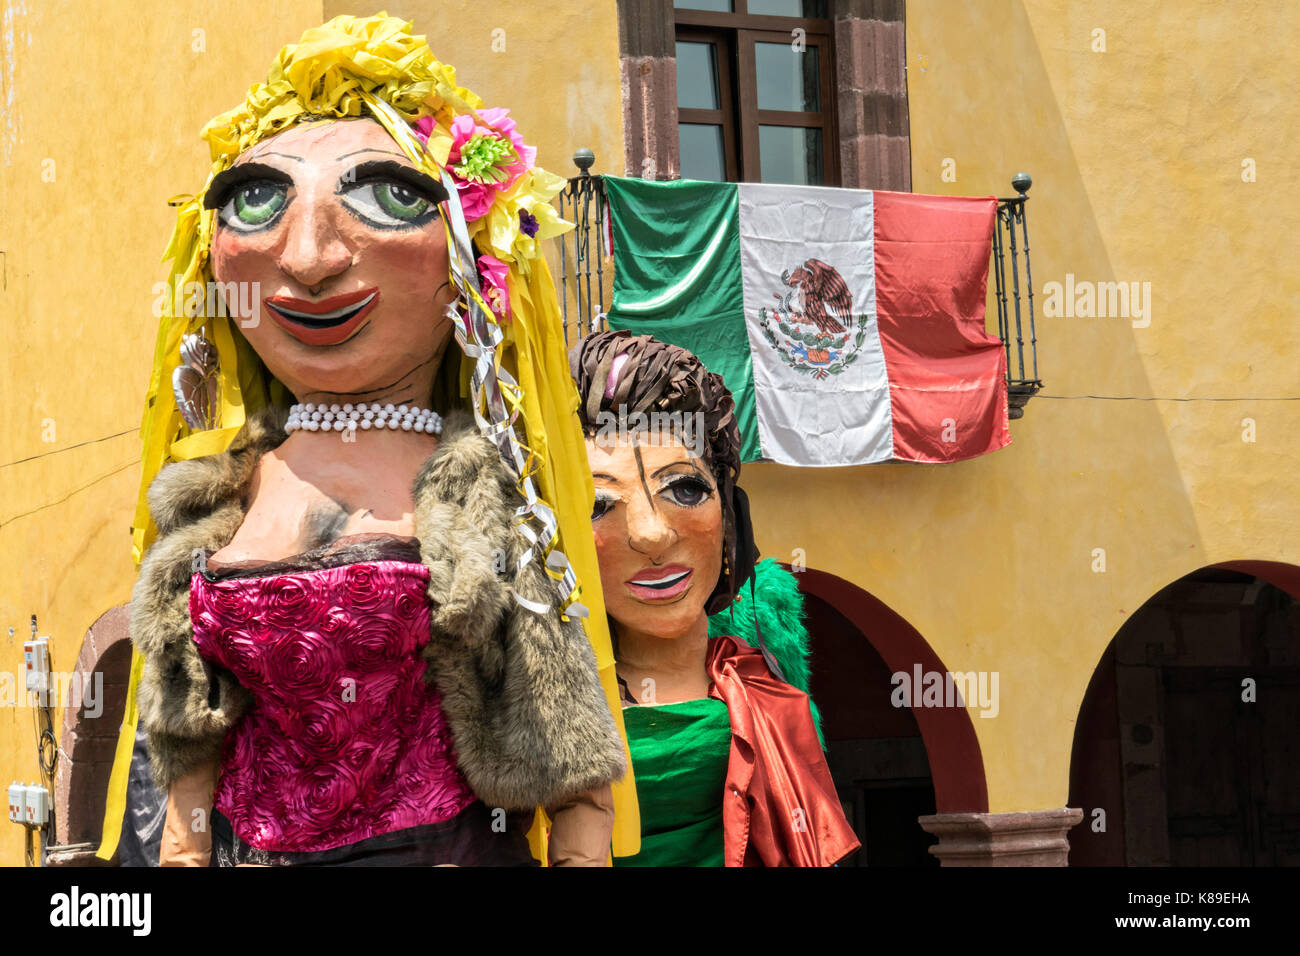 Giant papier mache puppets called mojigangas dance in the Jardin Allende during a children's parade celebrating - Stock Image